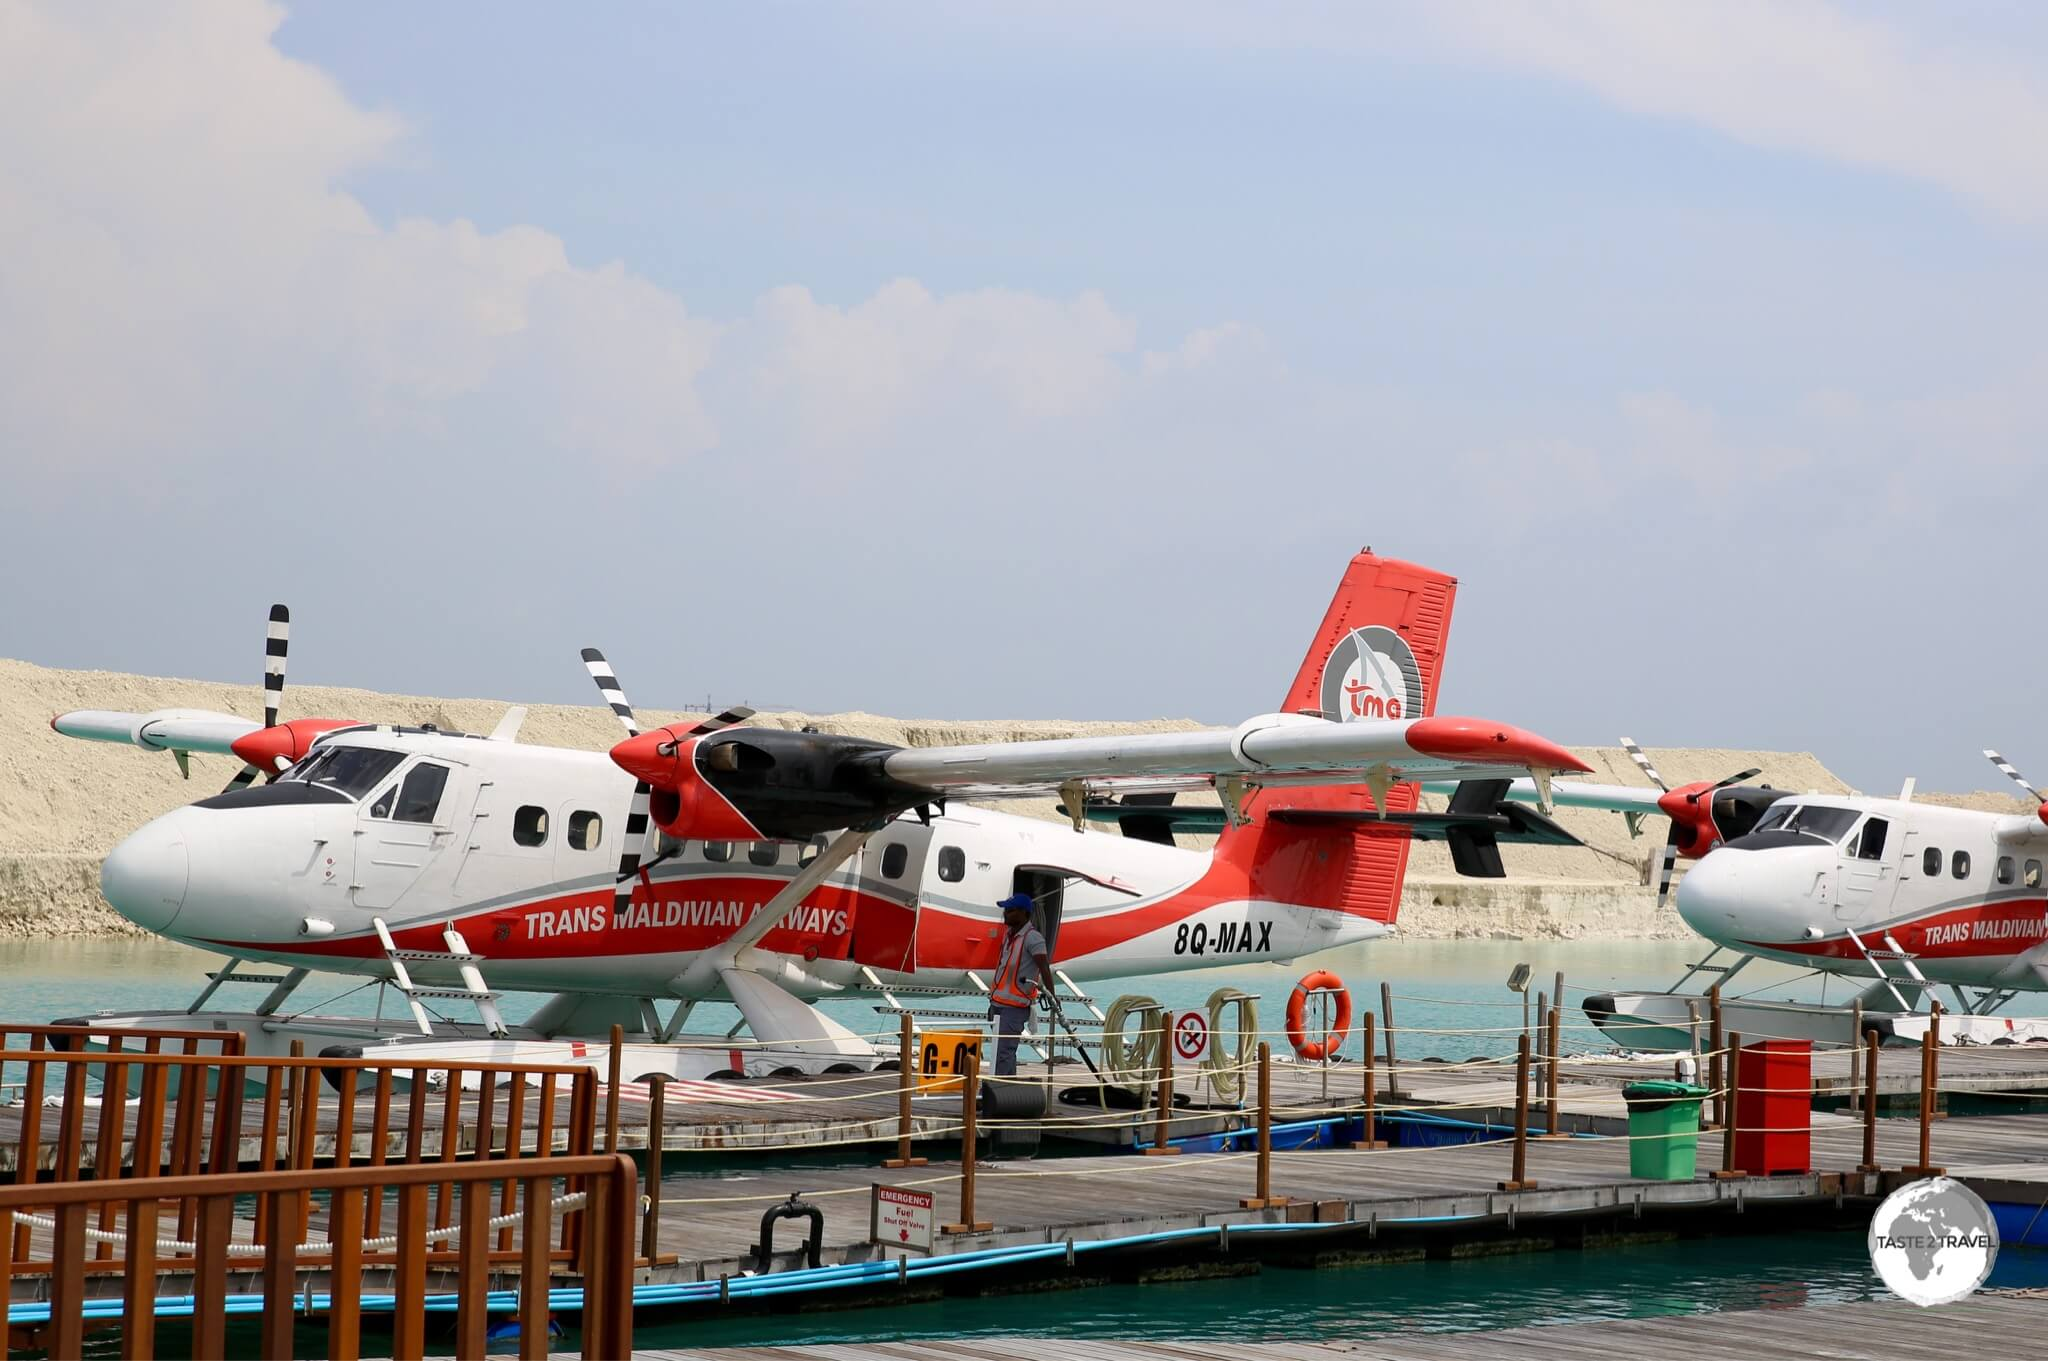 The TMA seaplane terminal in Malé. Ready to depart for Vilamendhoo resort.